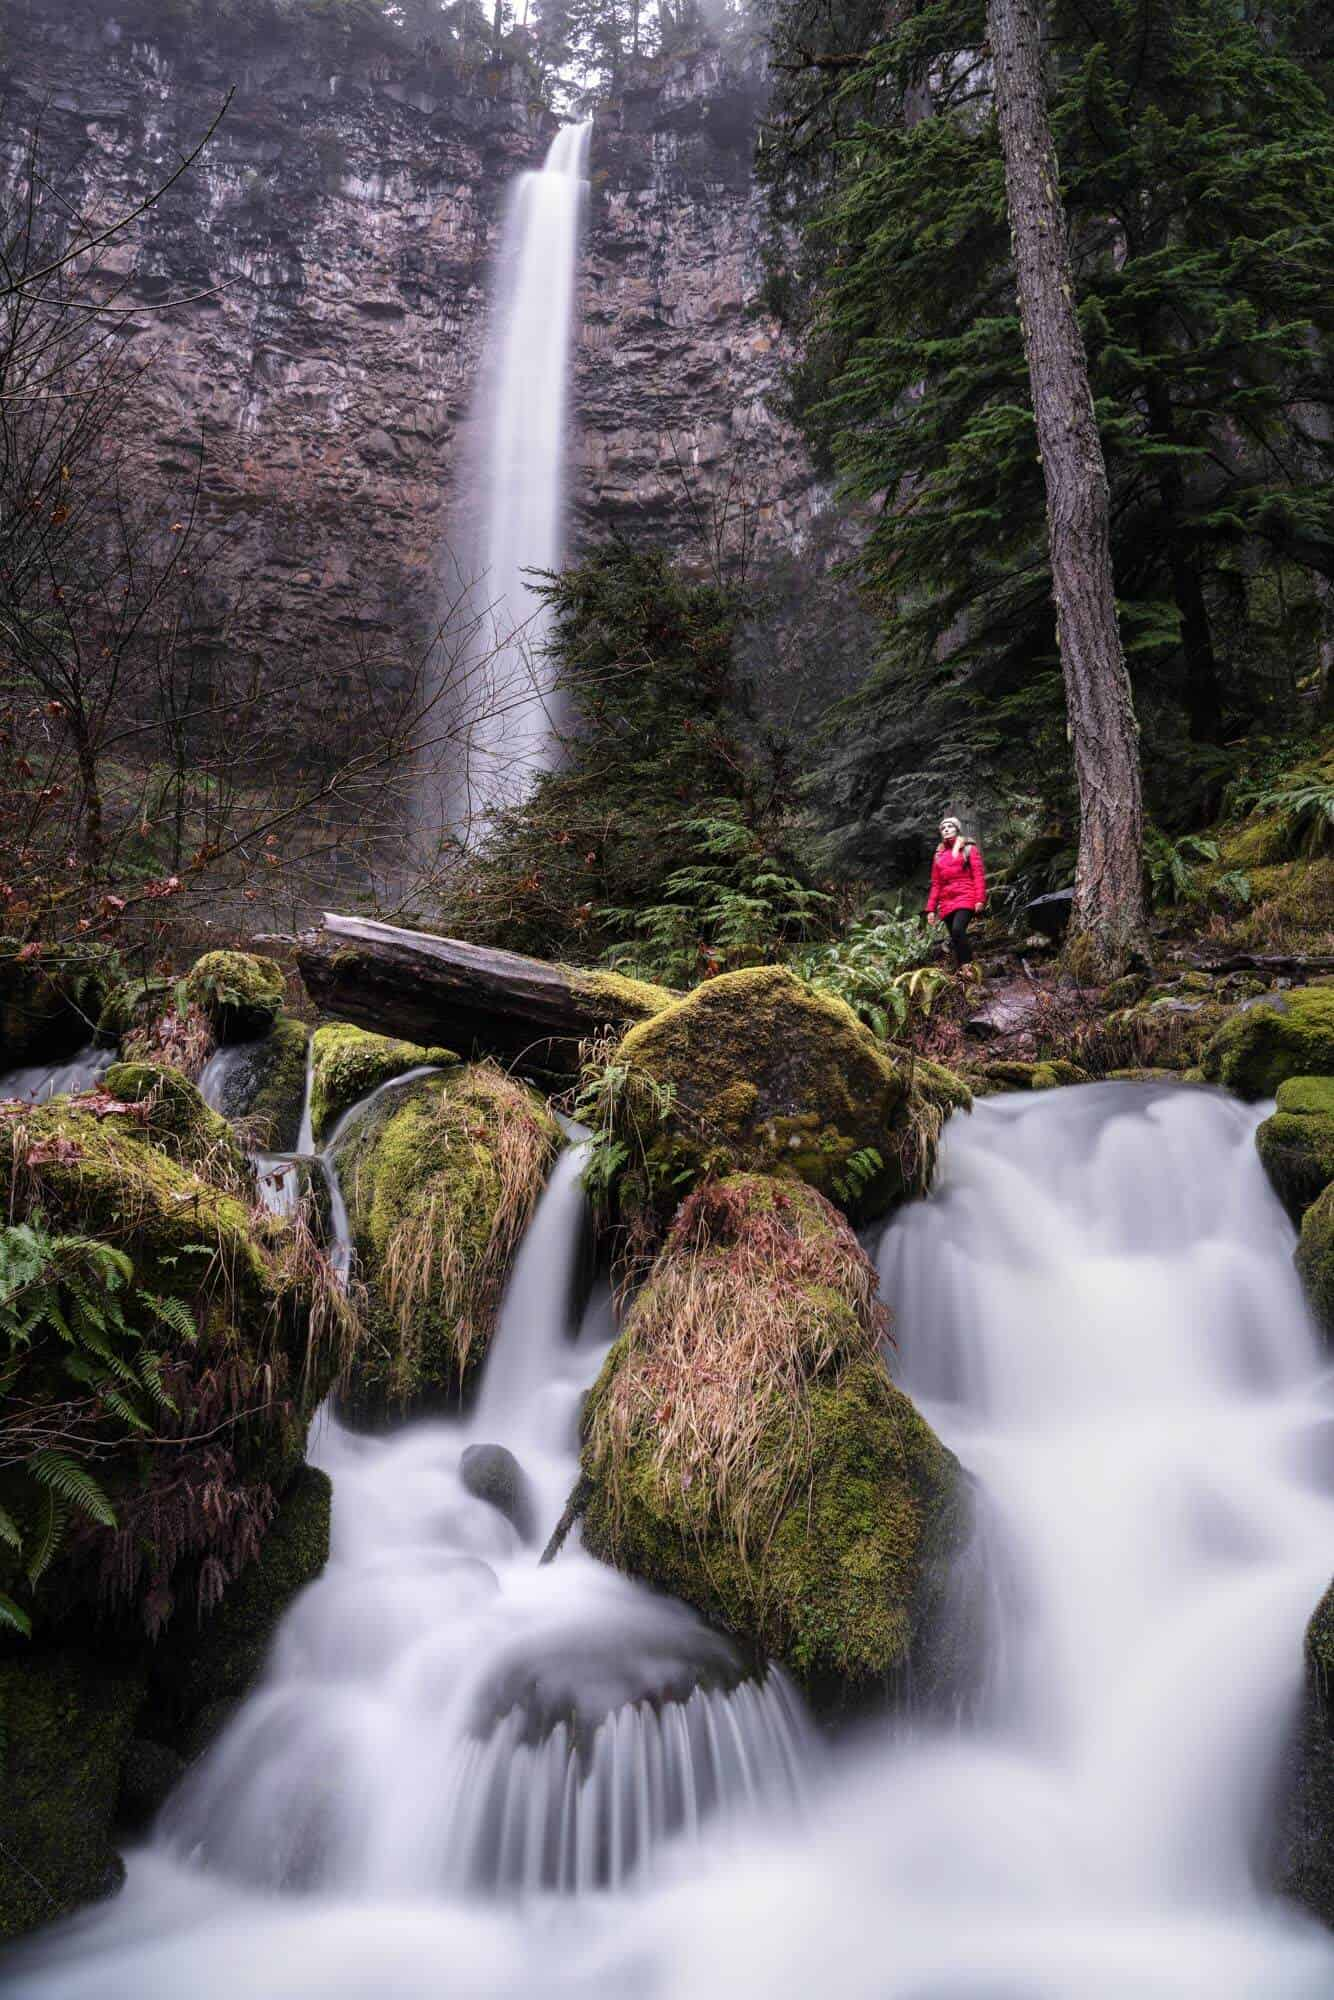 One of the best waterfalls in Oregon, Watson Falls is the second tallest in the state.